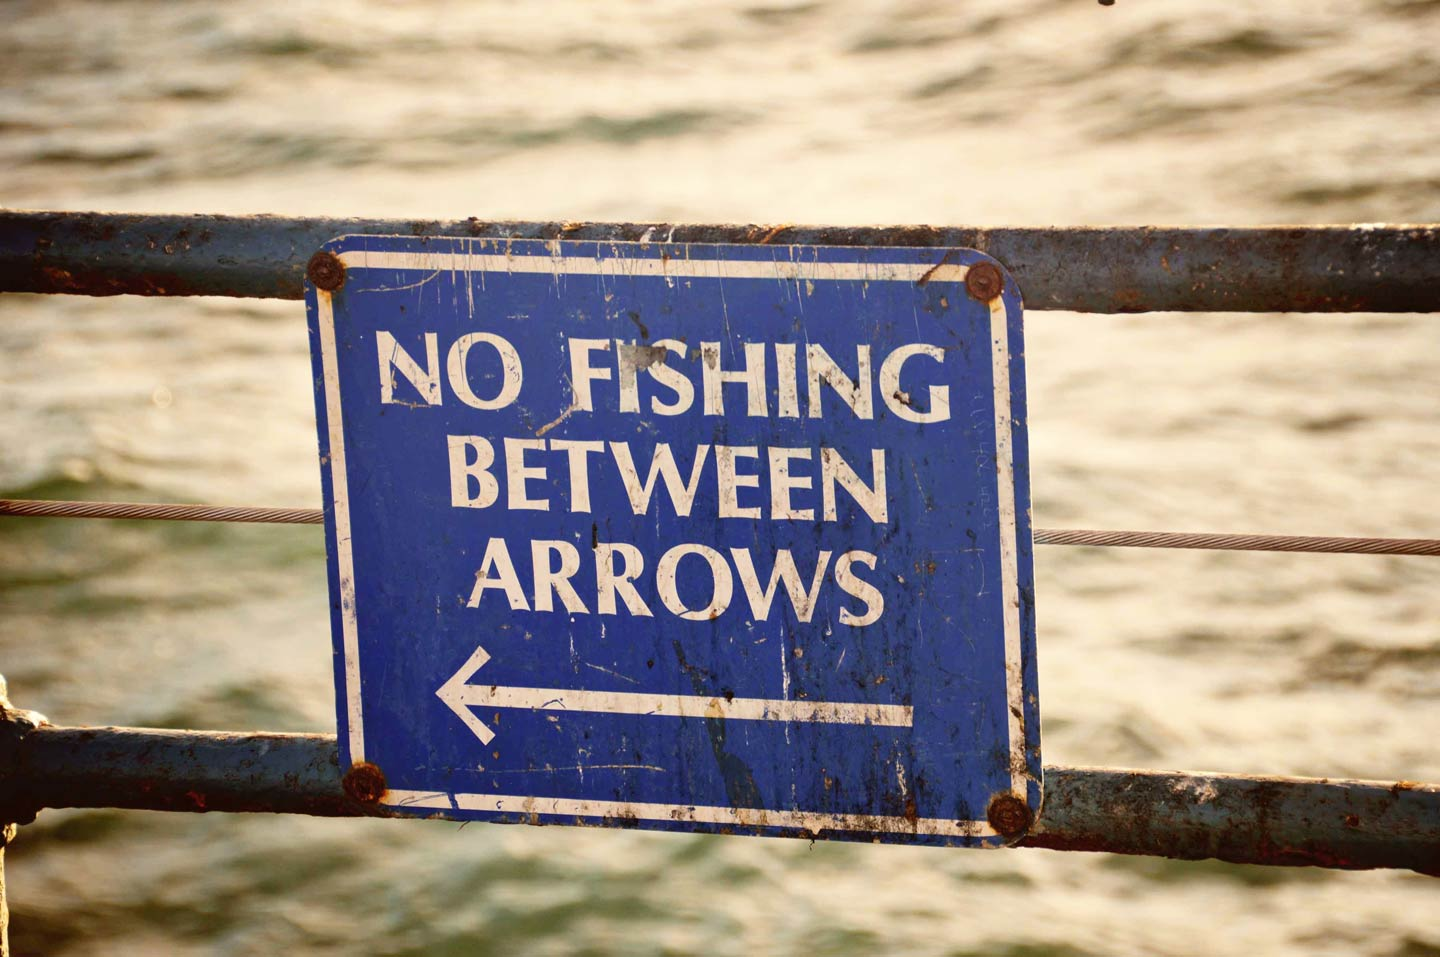 Signage indicating fishing is allowed only in certain areas.